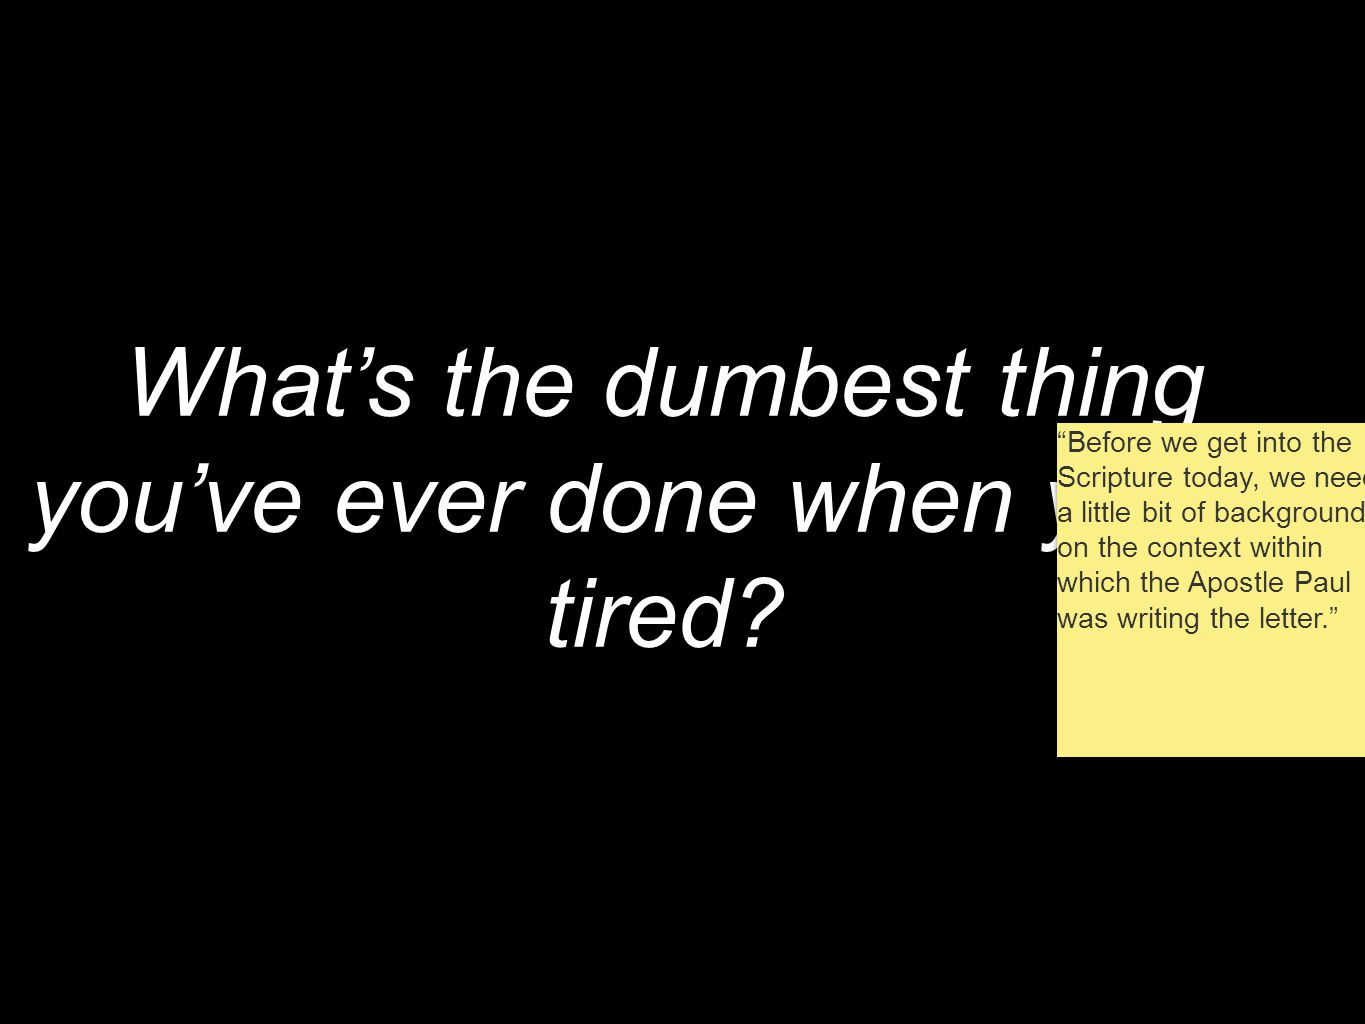 What's the dumbest thing you've ever done when you're tired.